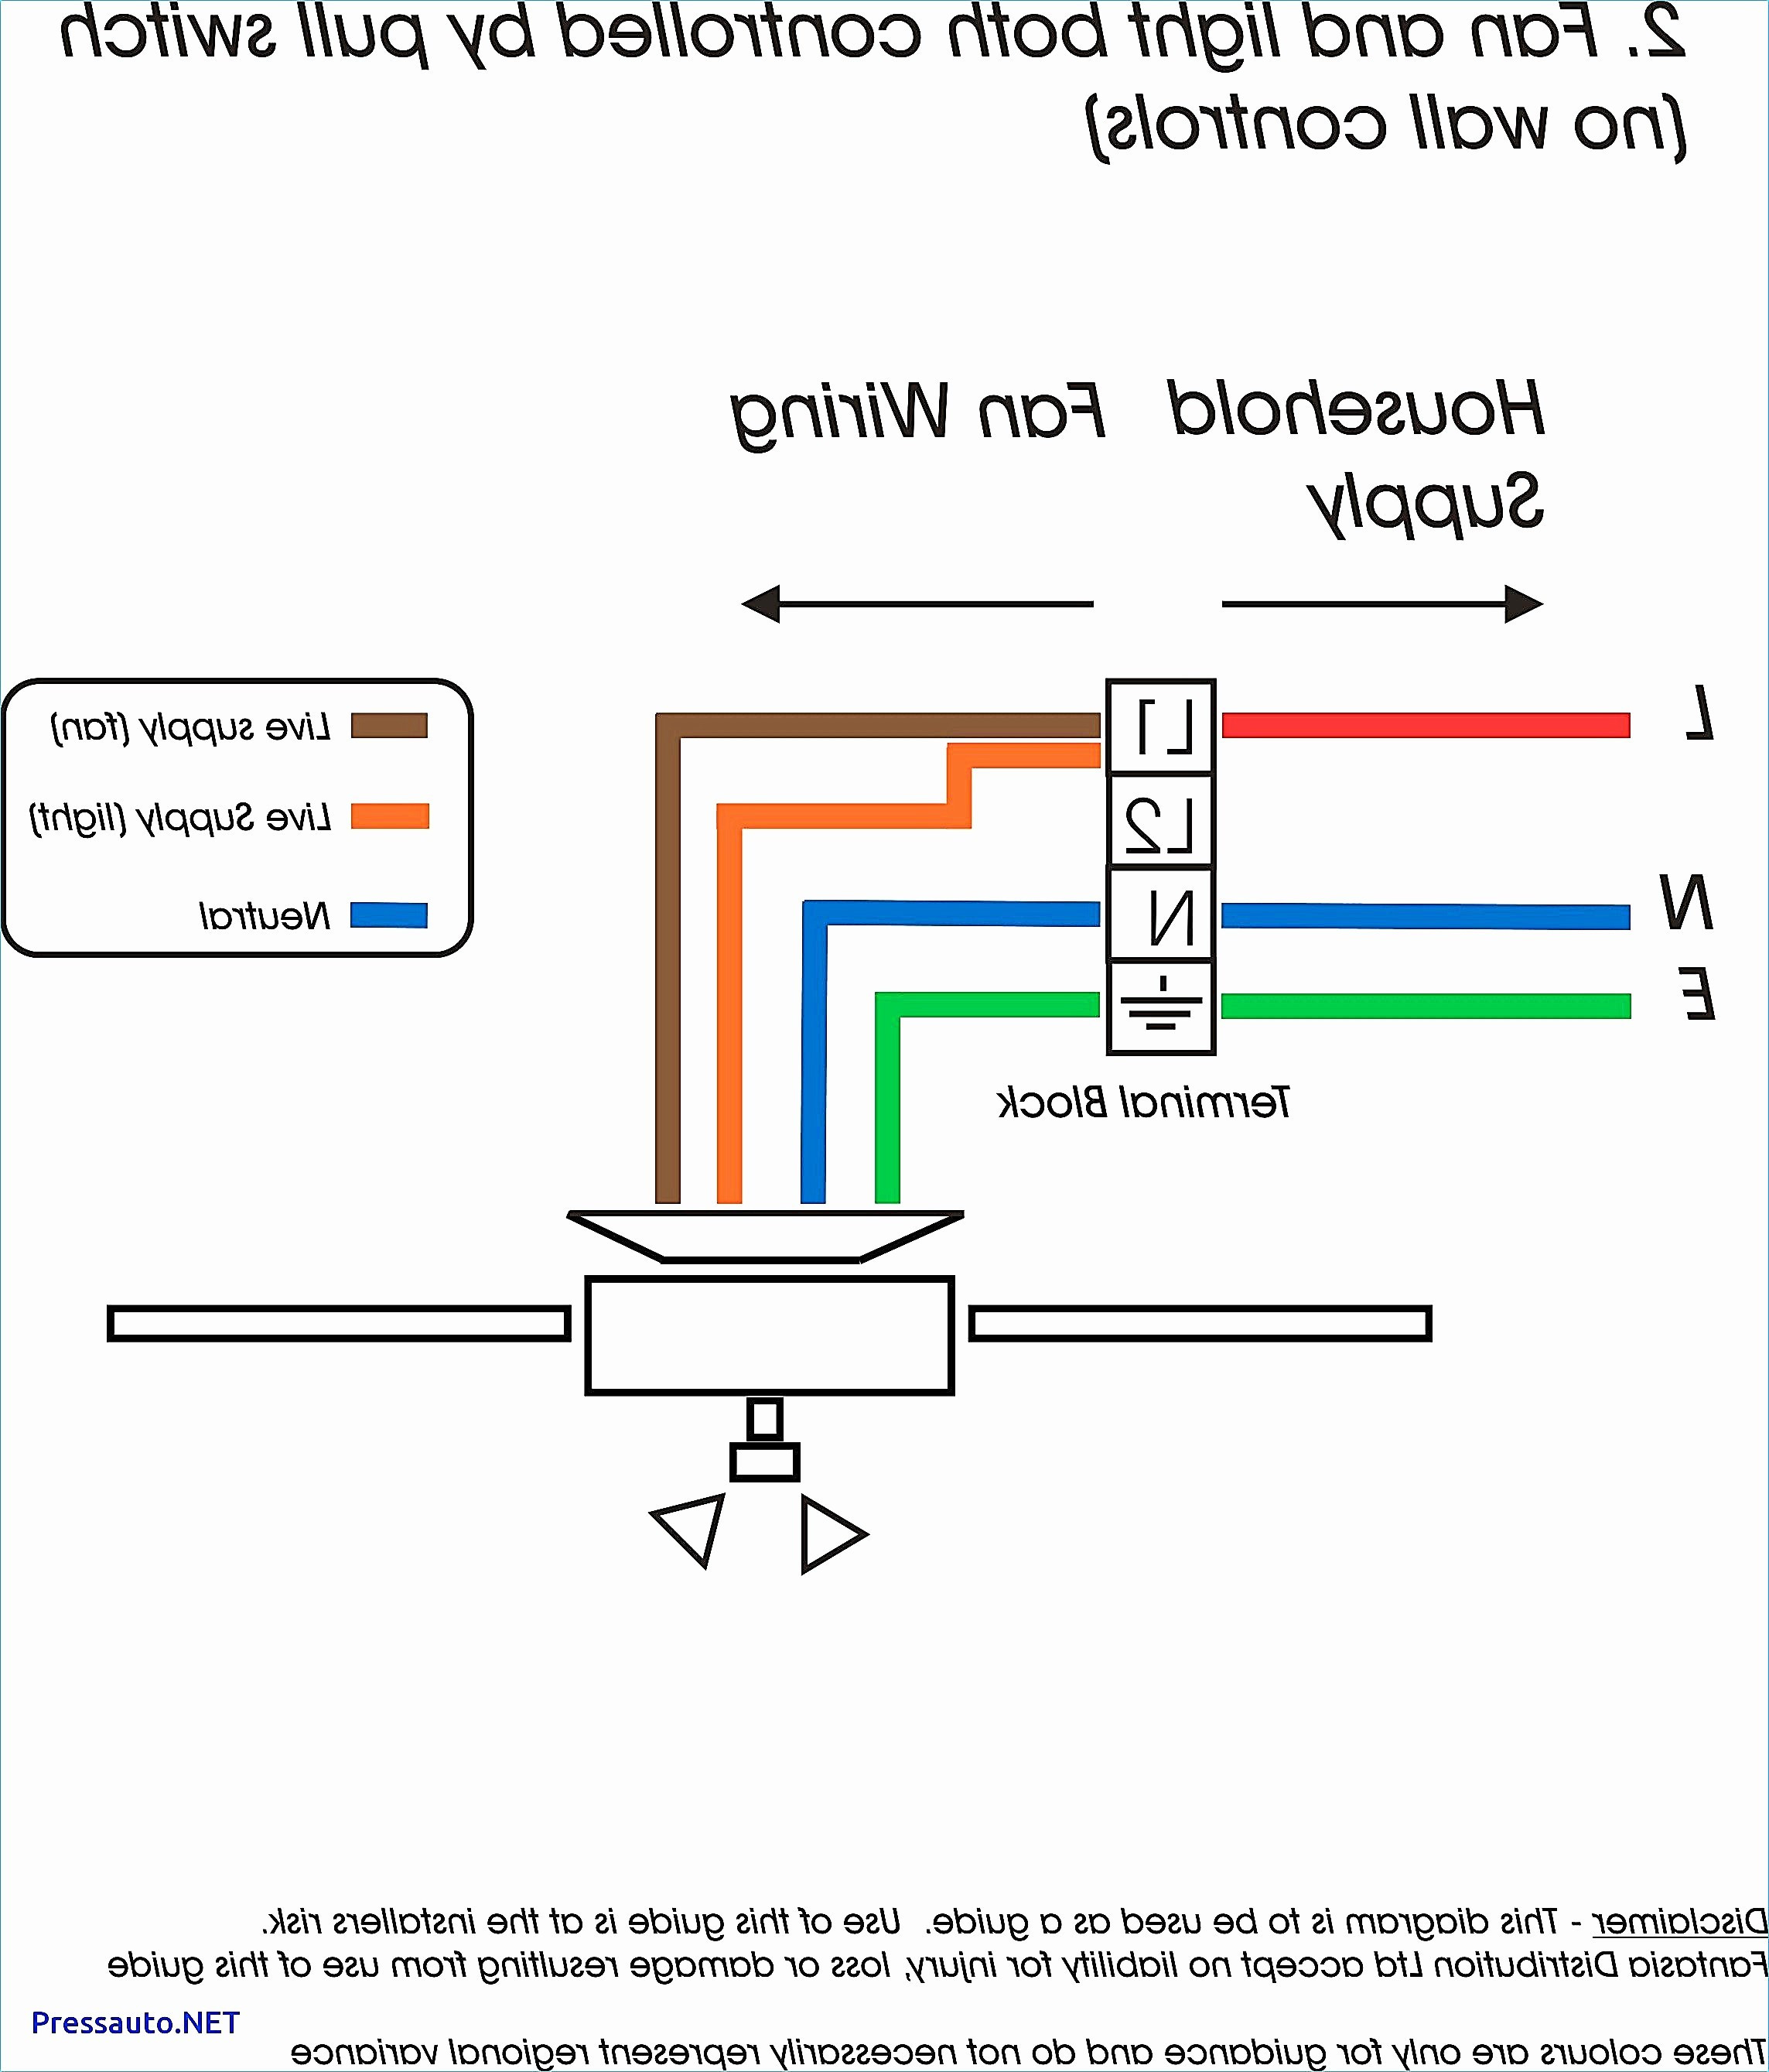 12v relay wiring diagram spotlights Collection-Wiring Diagram For Spotlights With A Relay Valid Wiring Diagram For Dual Switch E Light Best How To Wire Multiple 3-b